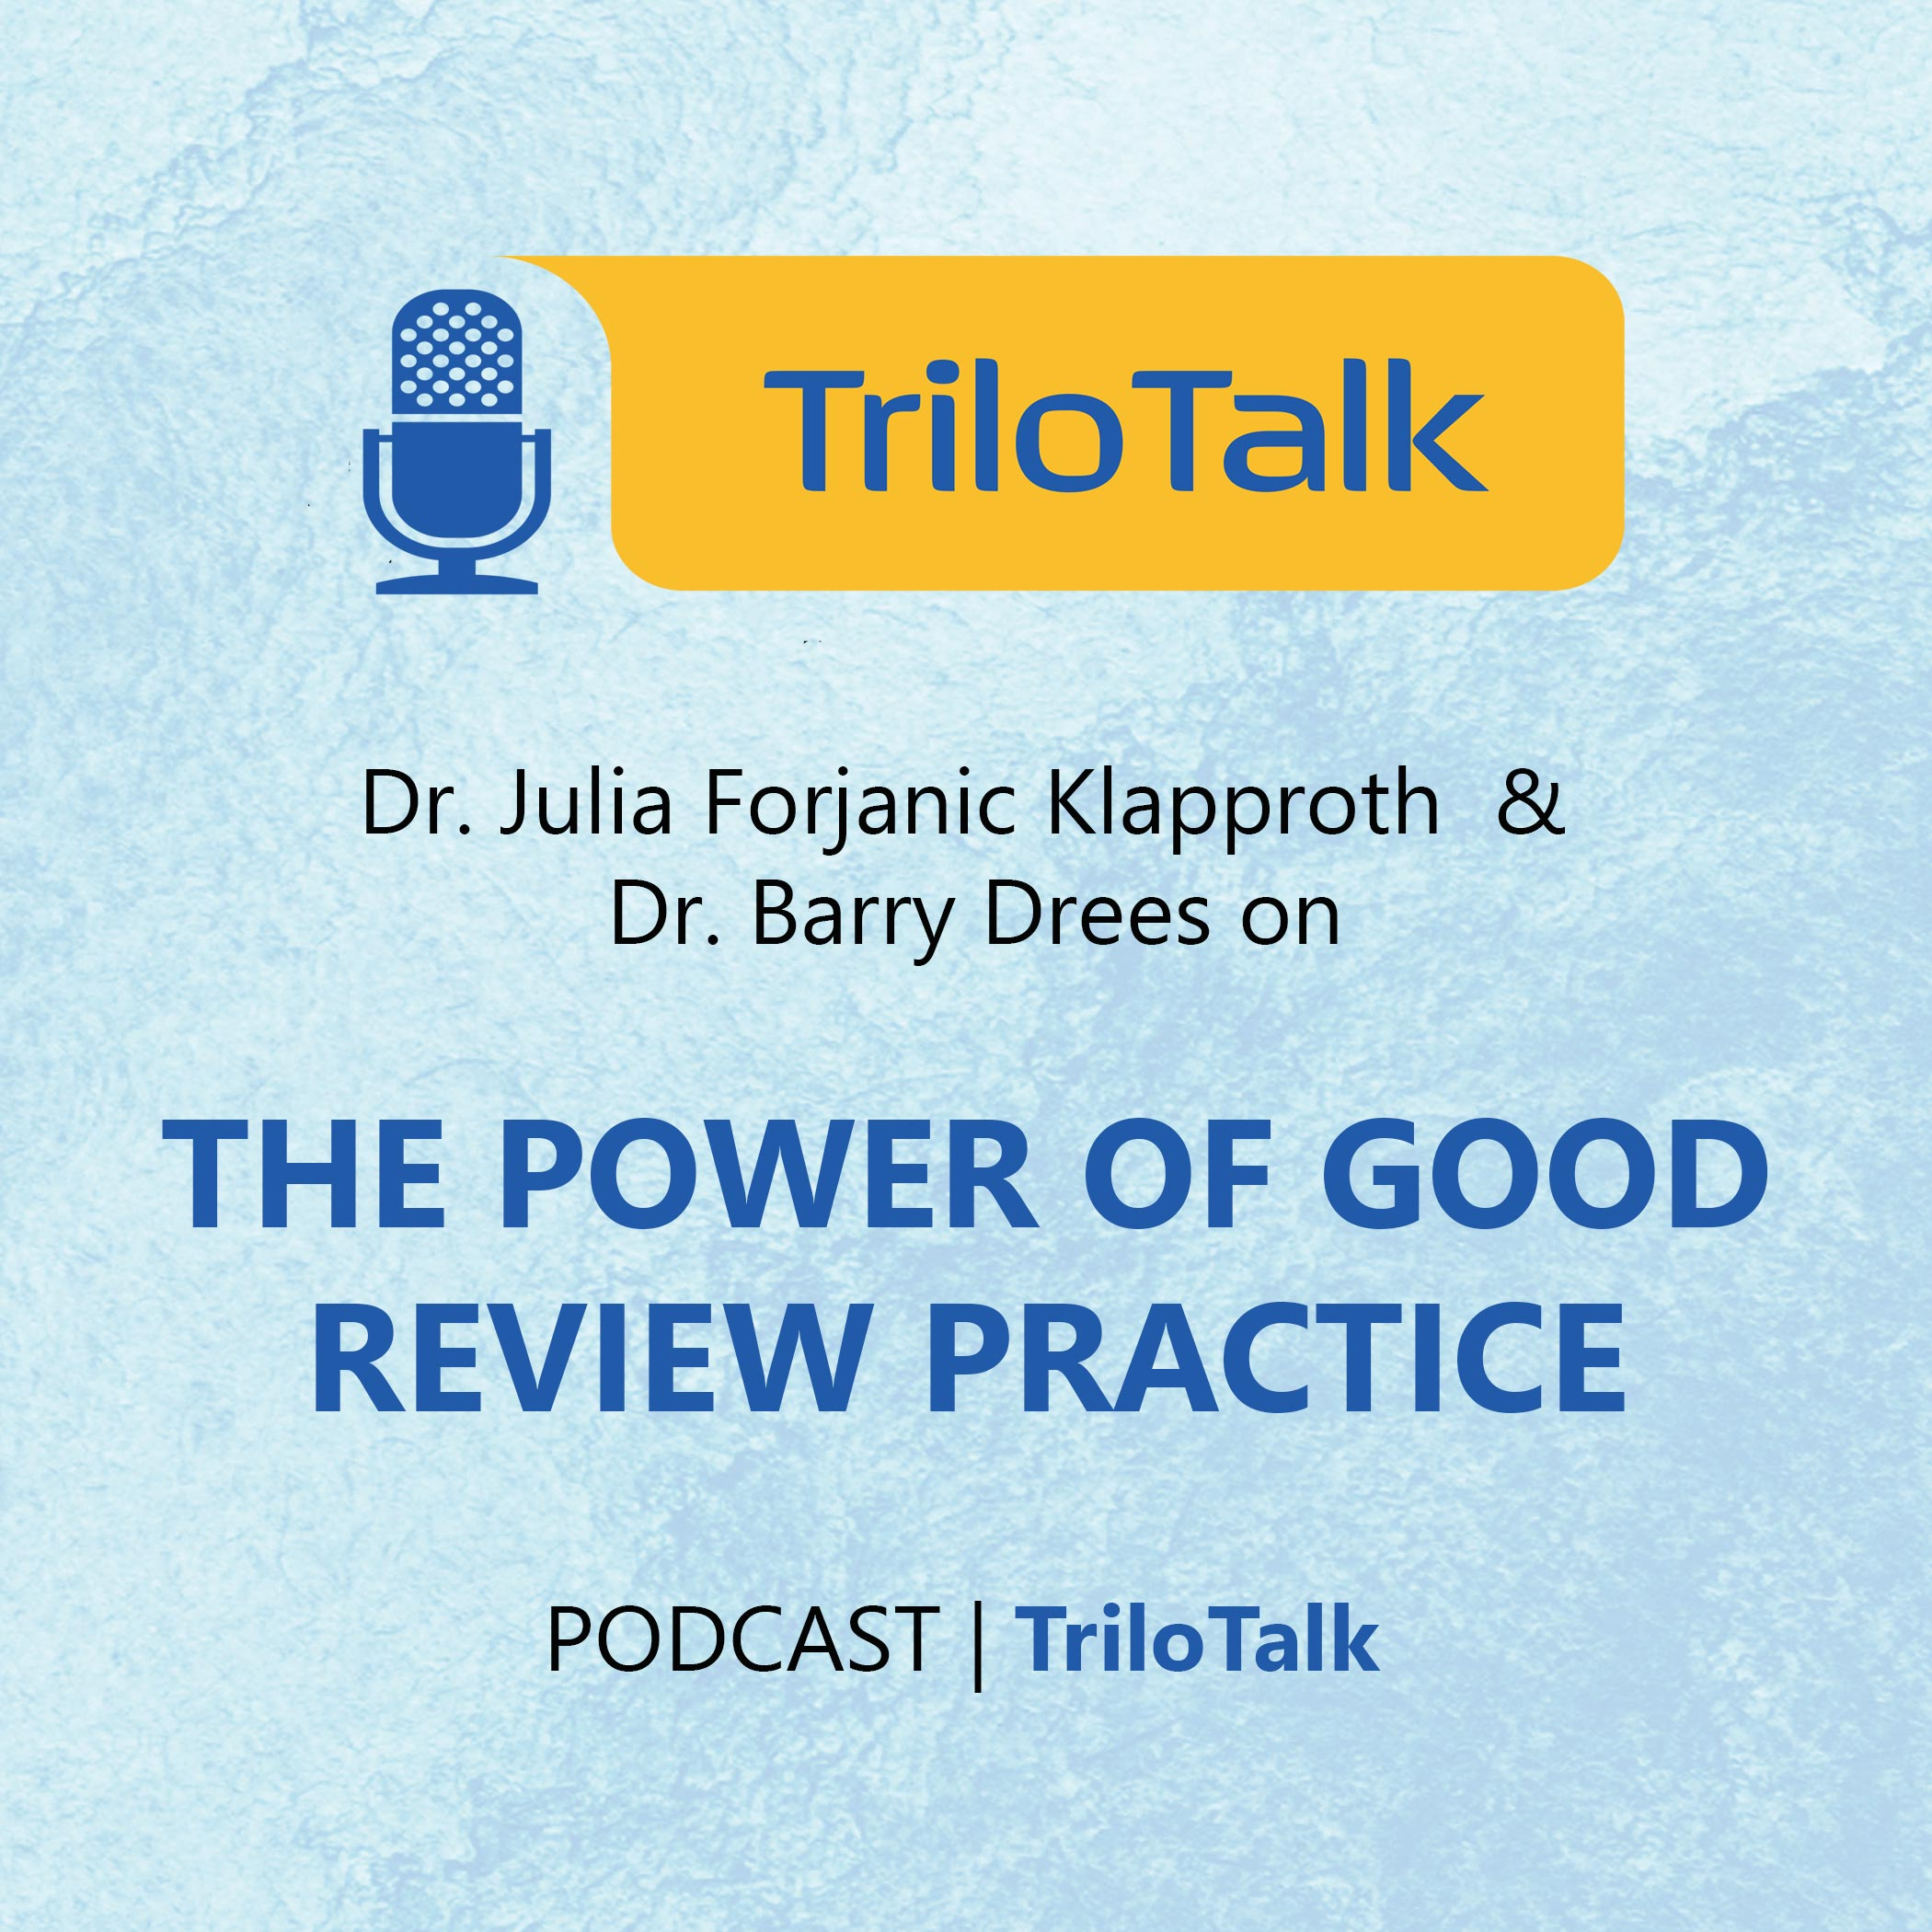 TriloTalk Episode 4 - The Power of Good Review Practice